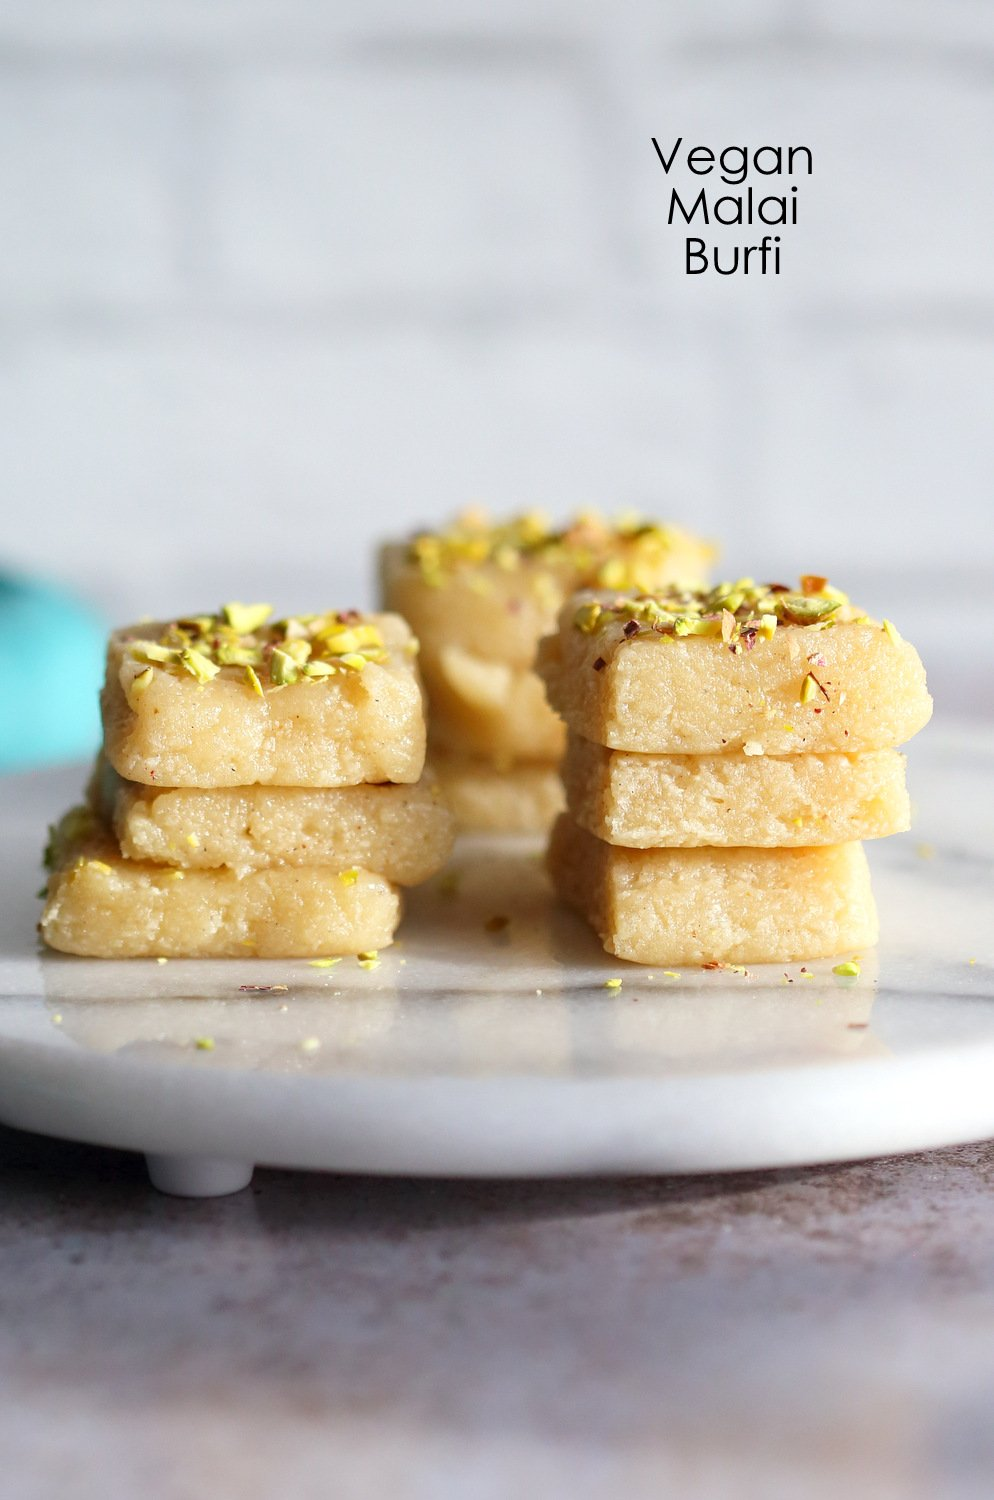 Our Vegan Malai Burfi Bars on Marble